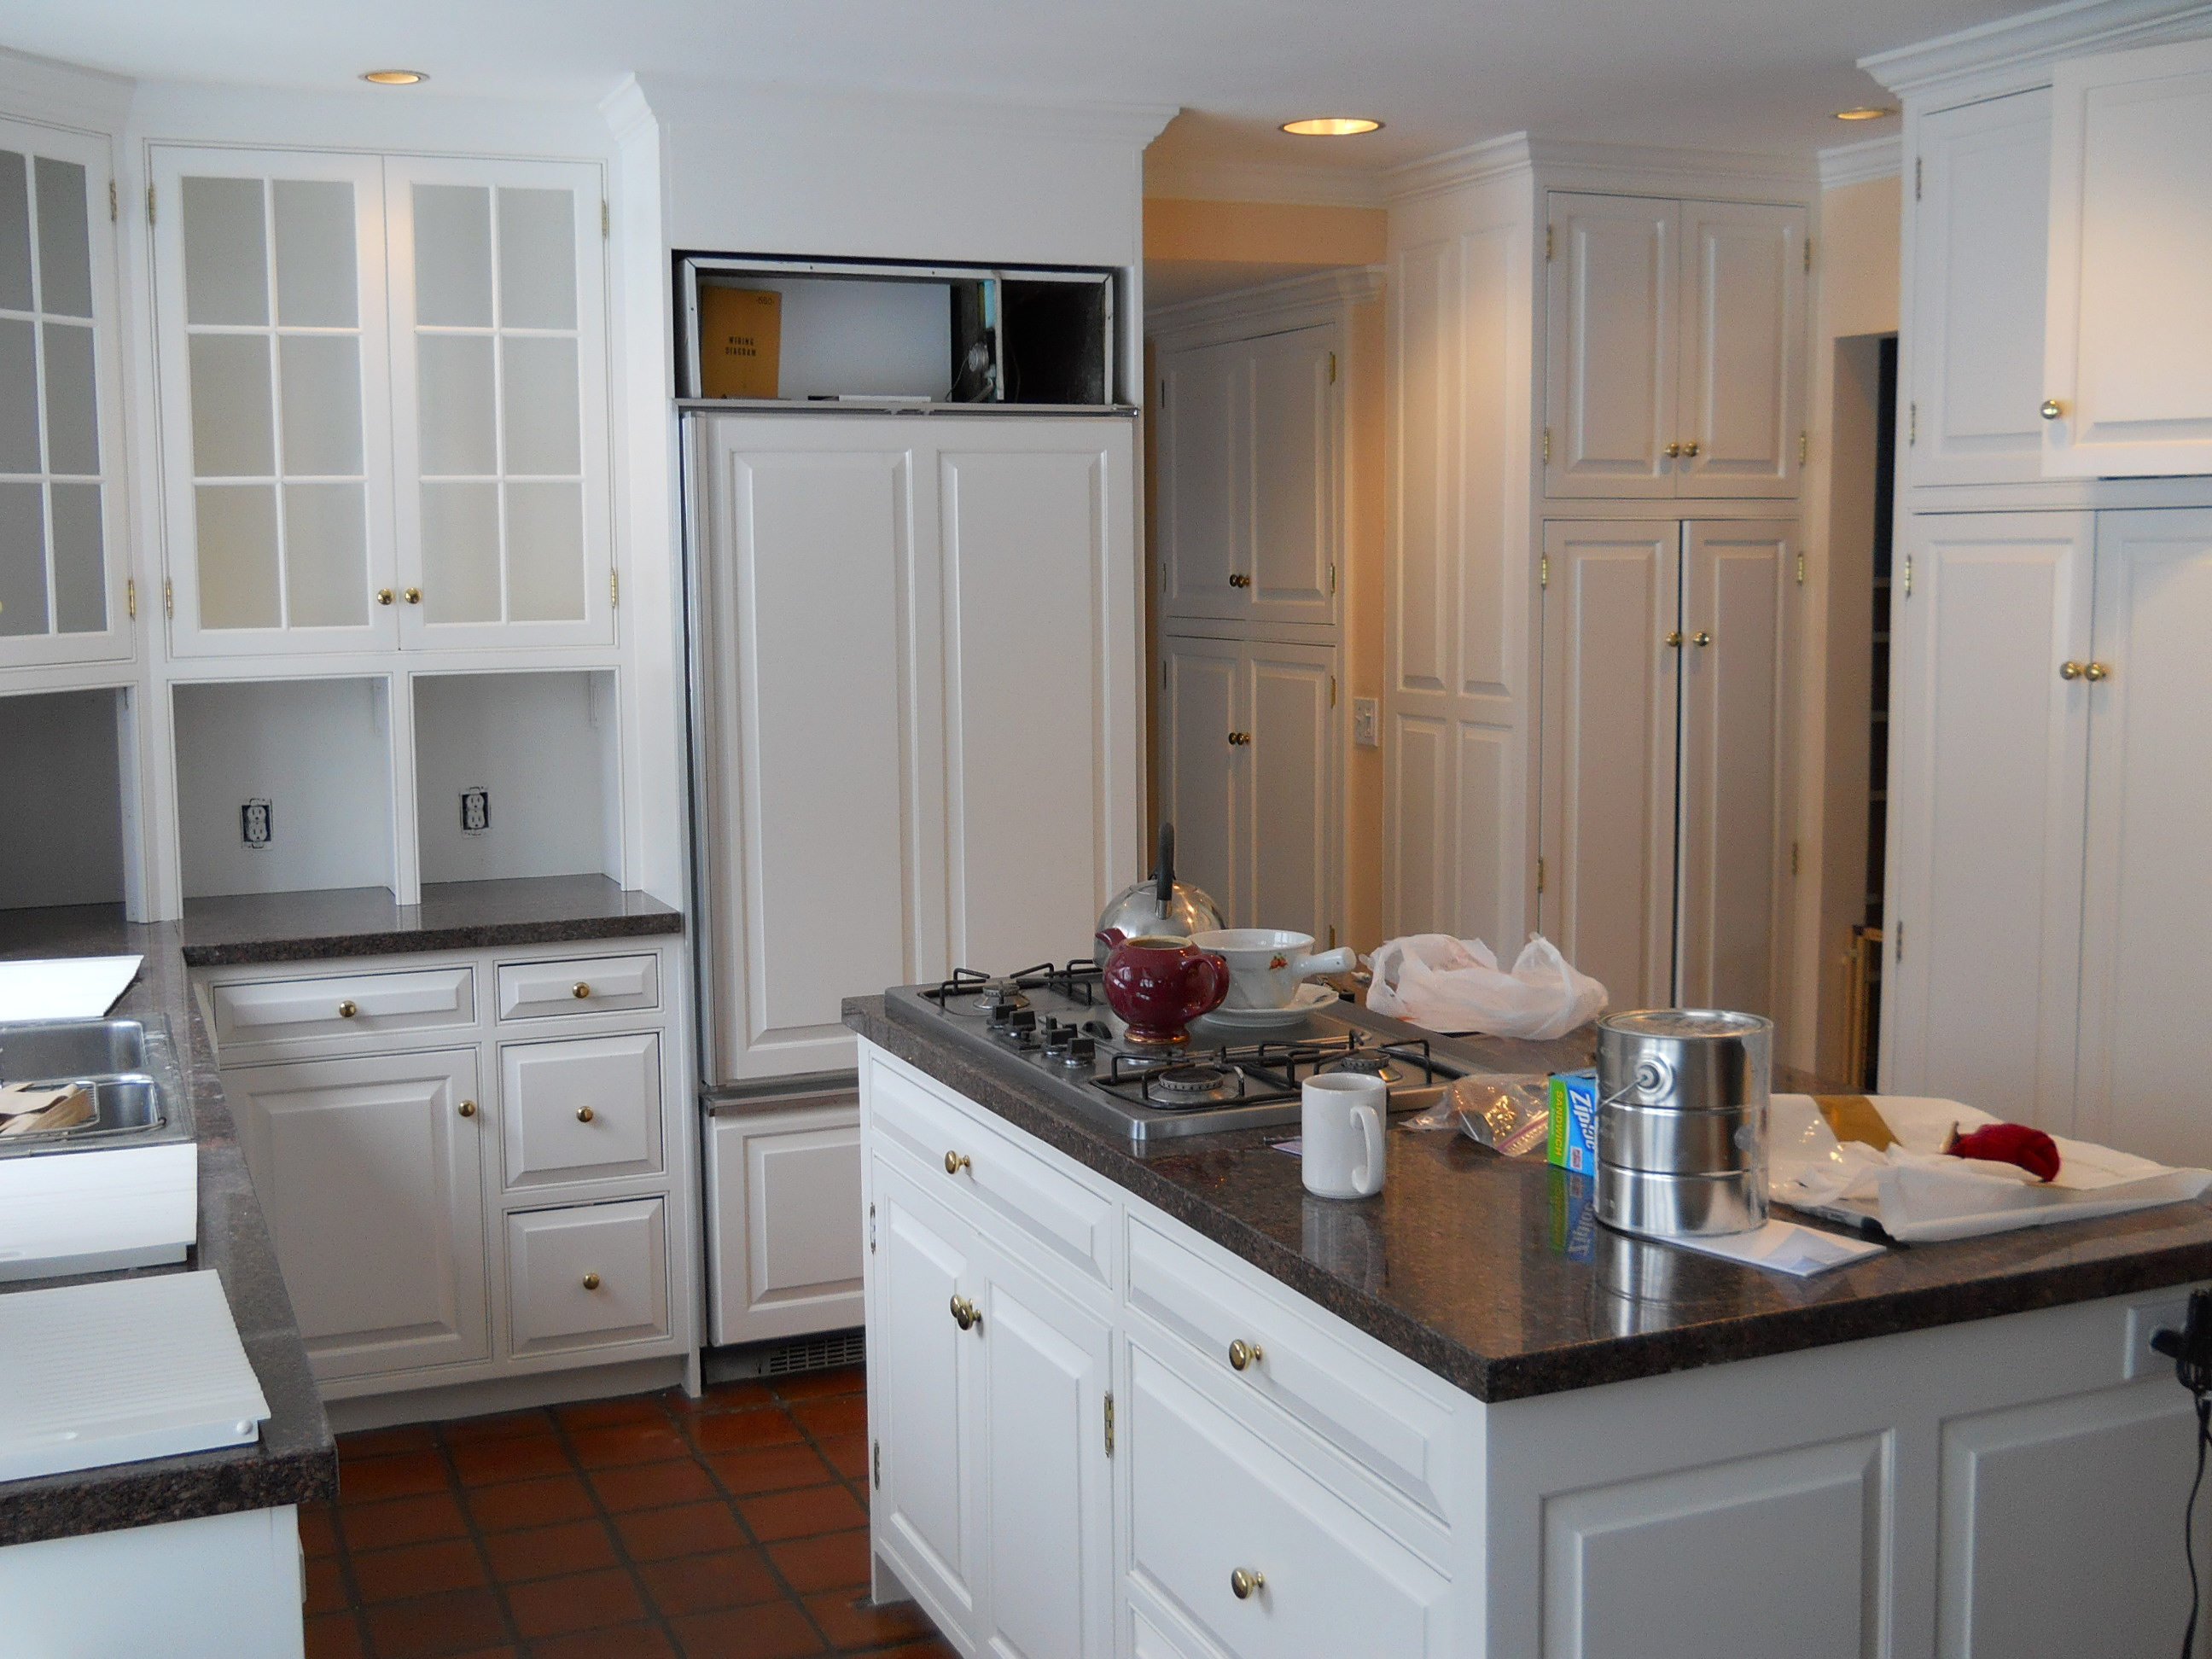 Choosing The Right Paint Color For Kitchen Cabinets